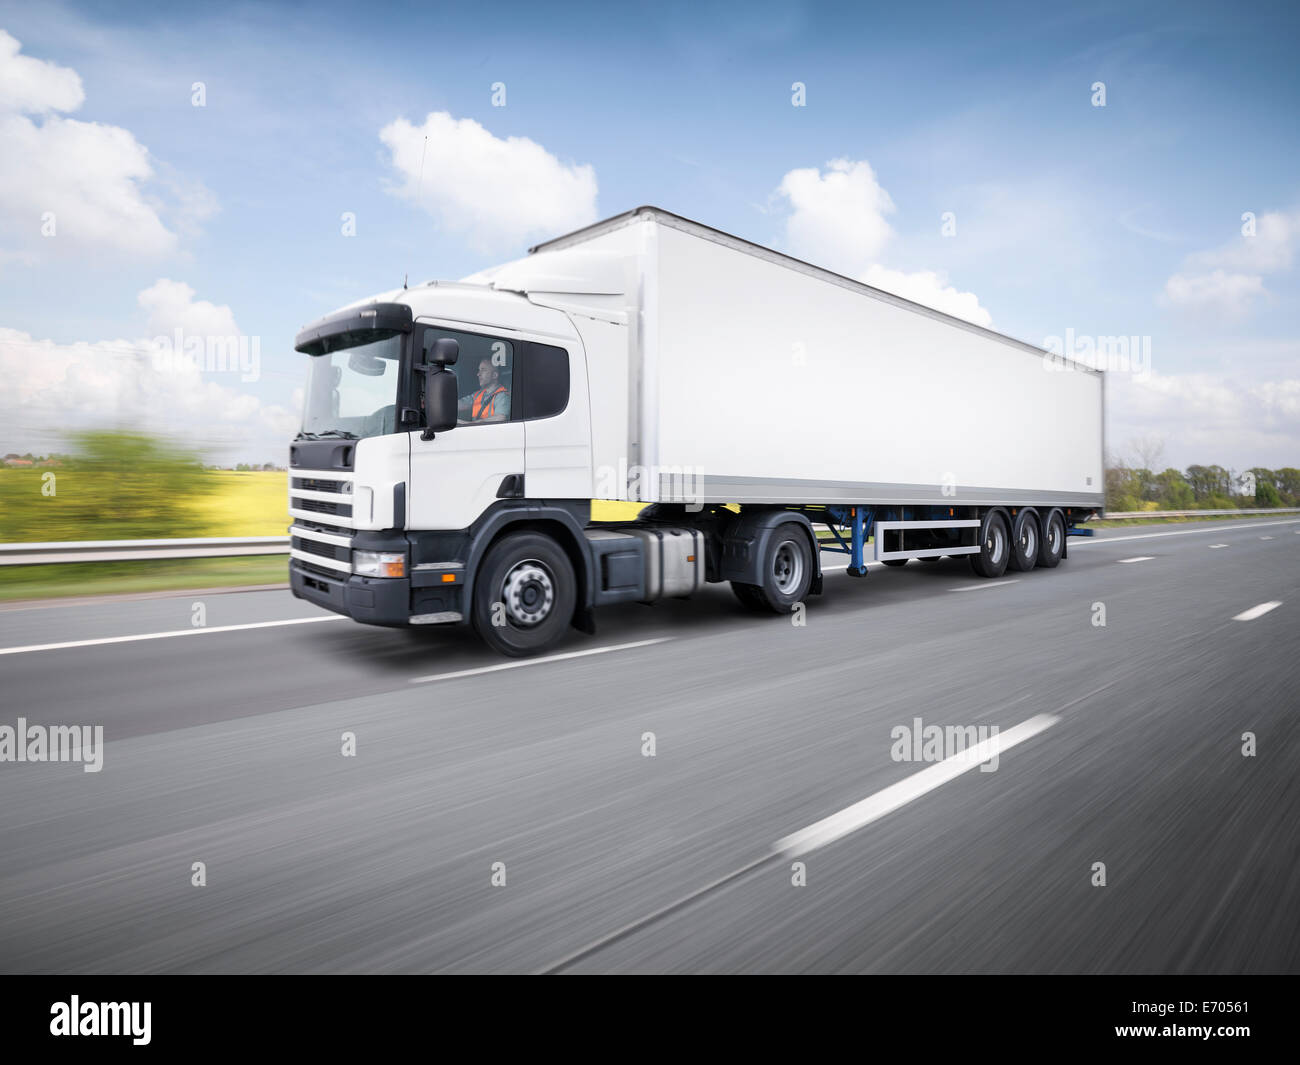 Freight truck on the move on motorway - Stock Image